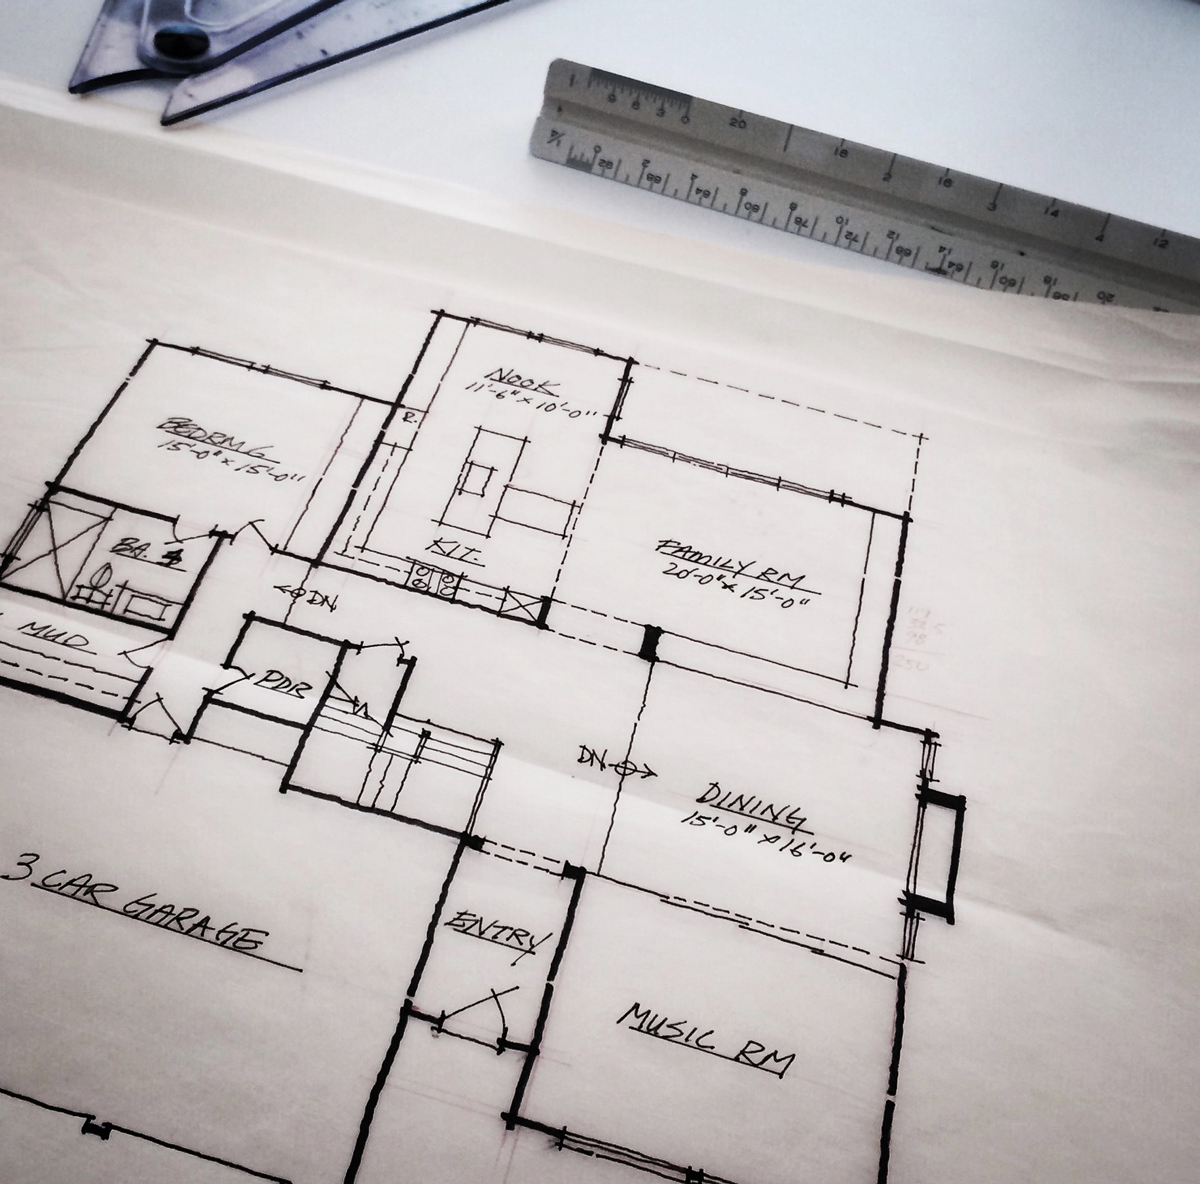 Floor plan design, Irvine, CA / MYD studio